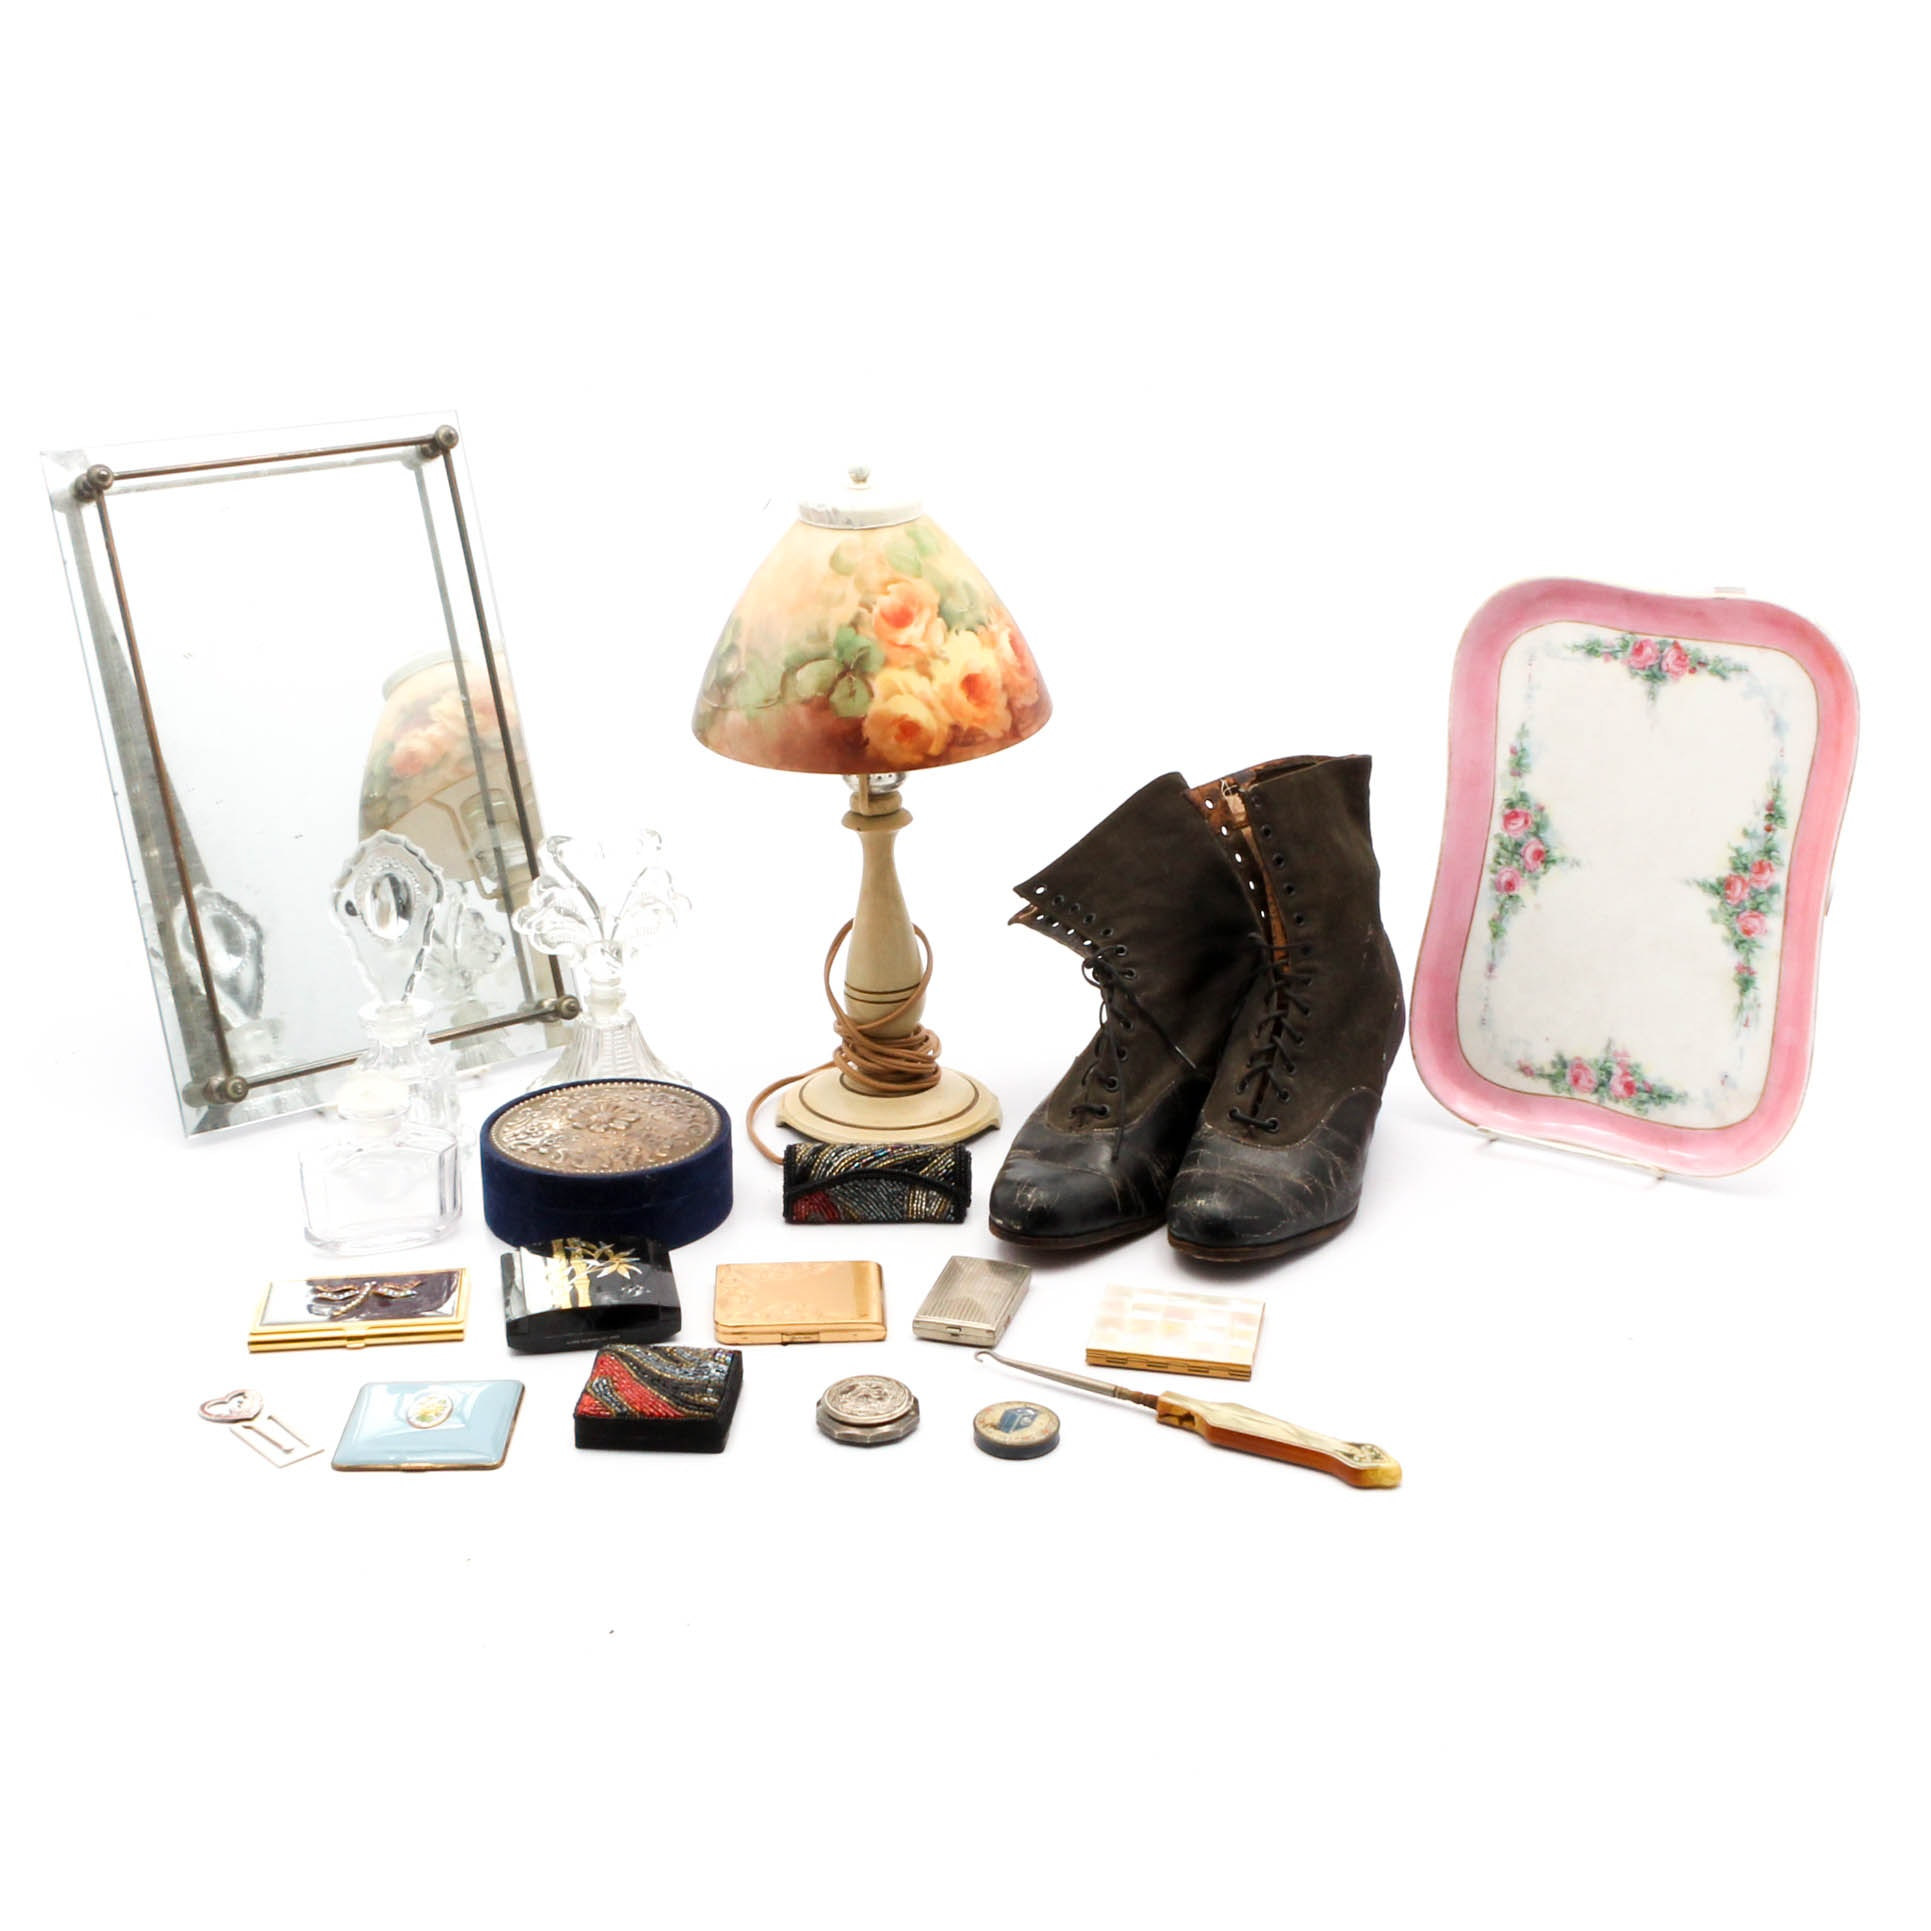 Boudoir Lamp, Vanity Trays, Perfume Bottles and Compacts